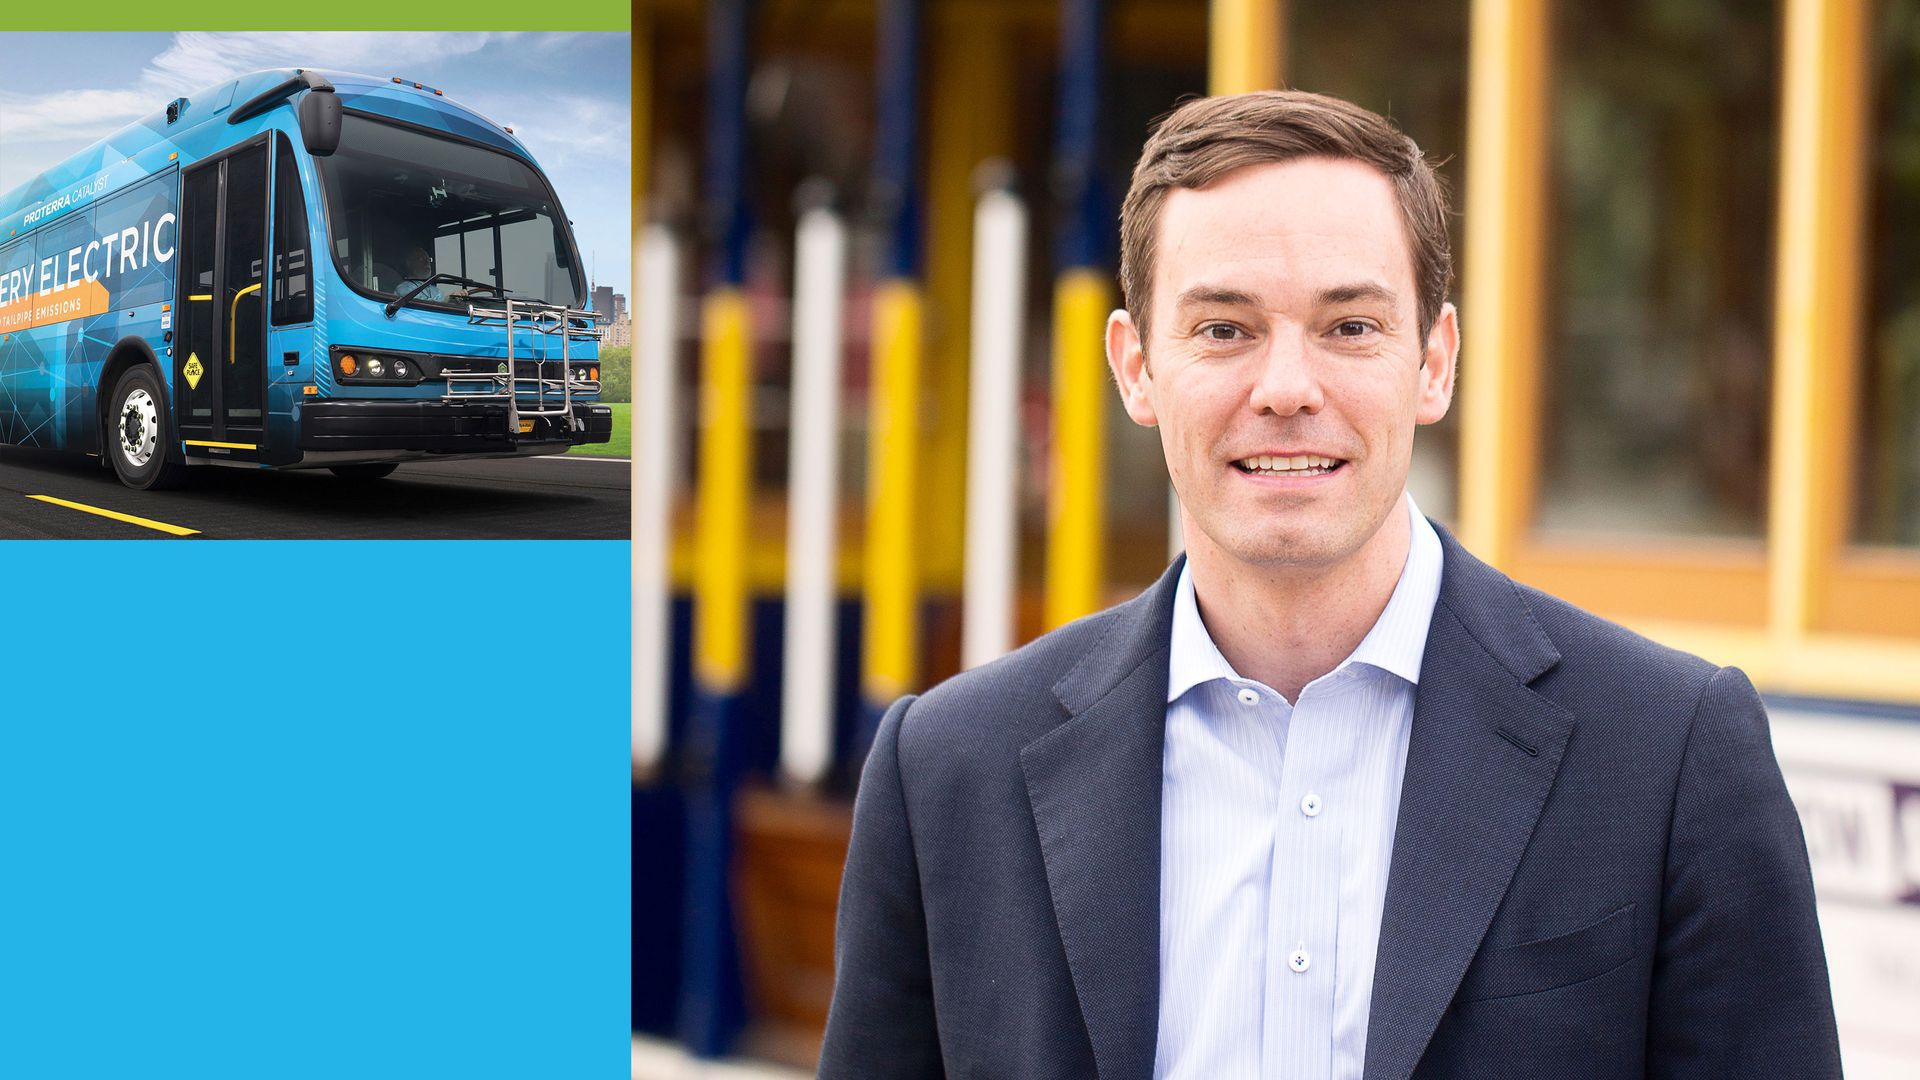 Illustration with photo of Proterra president and a bus